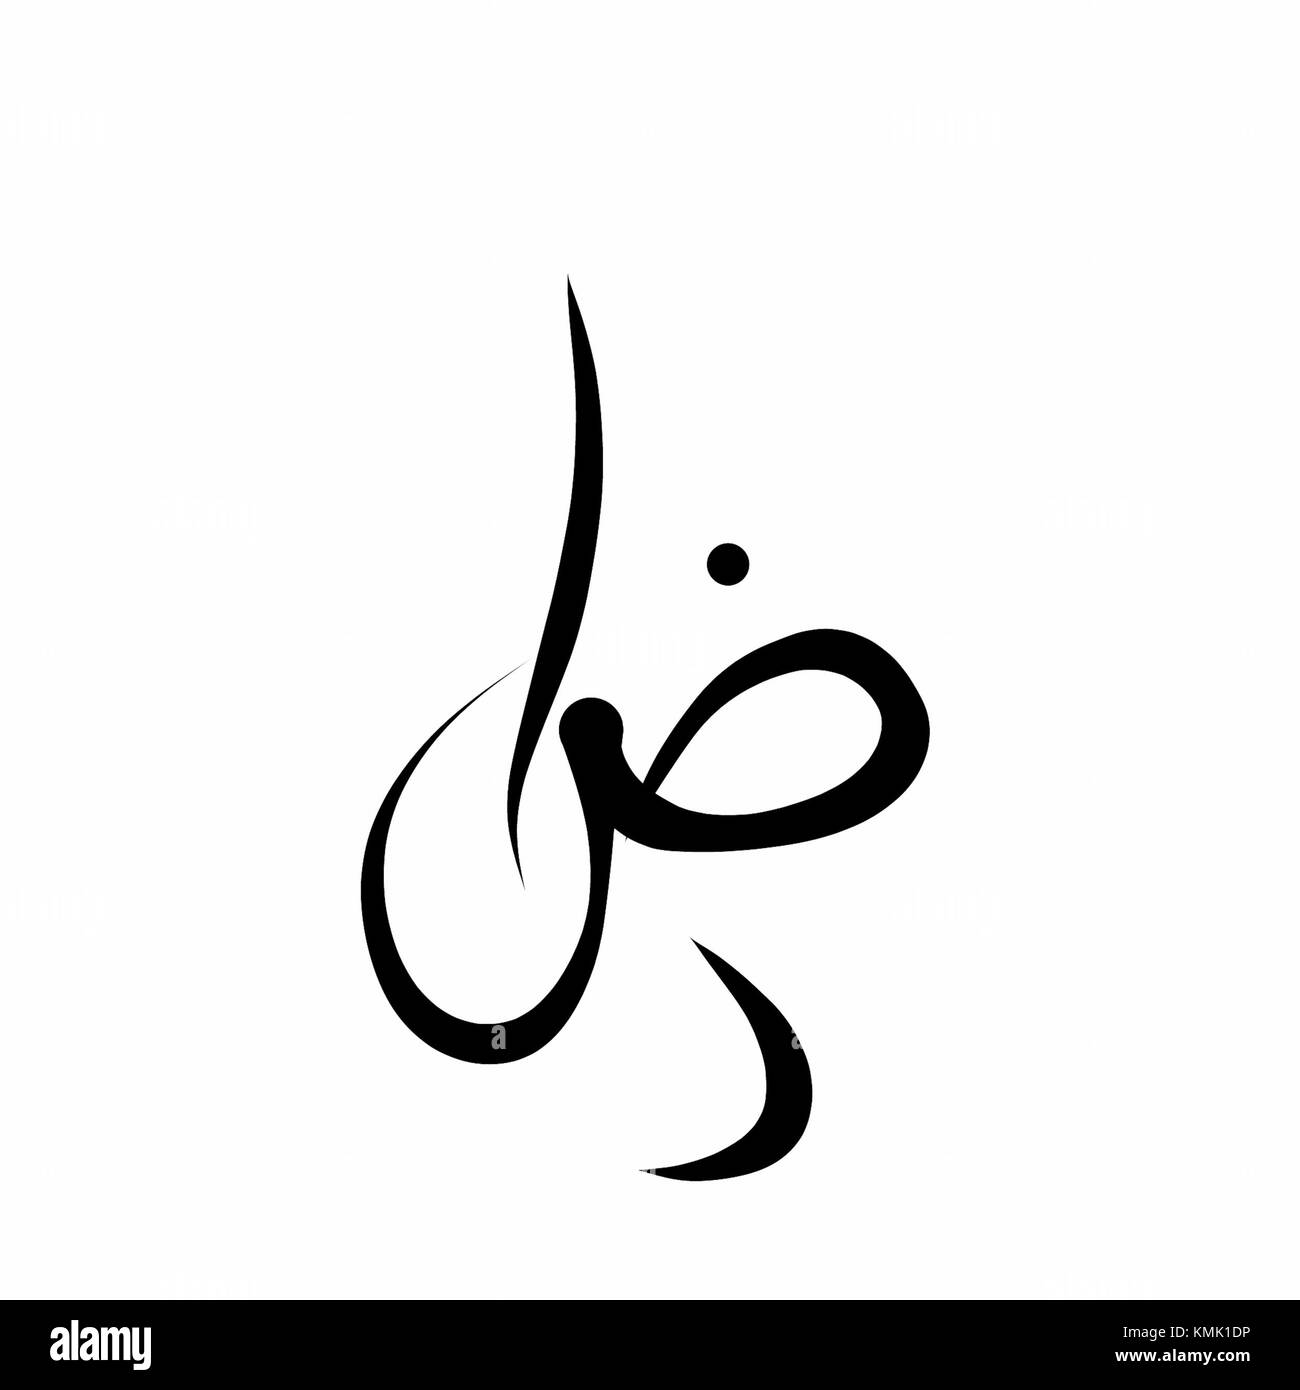 Calligraphie Arabe A Colorier Quran Vector Vectors Photos Quran Vector Vectors Images Alamy